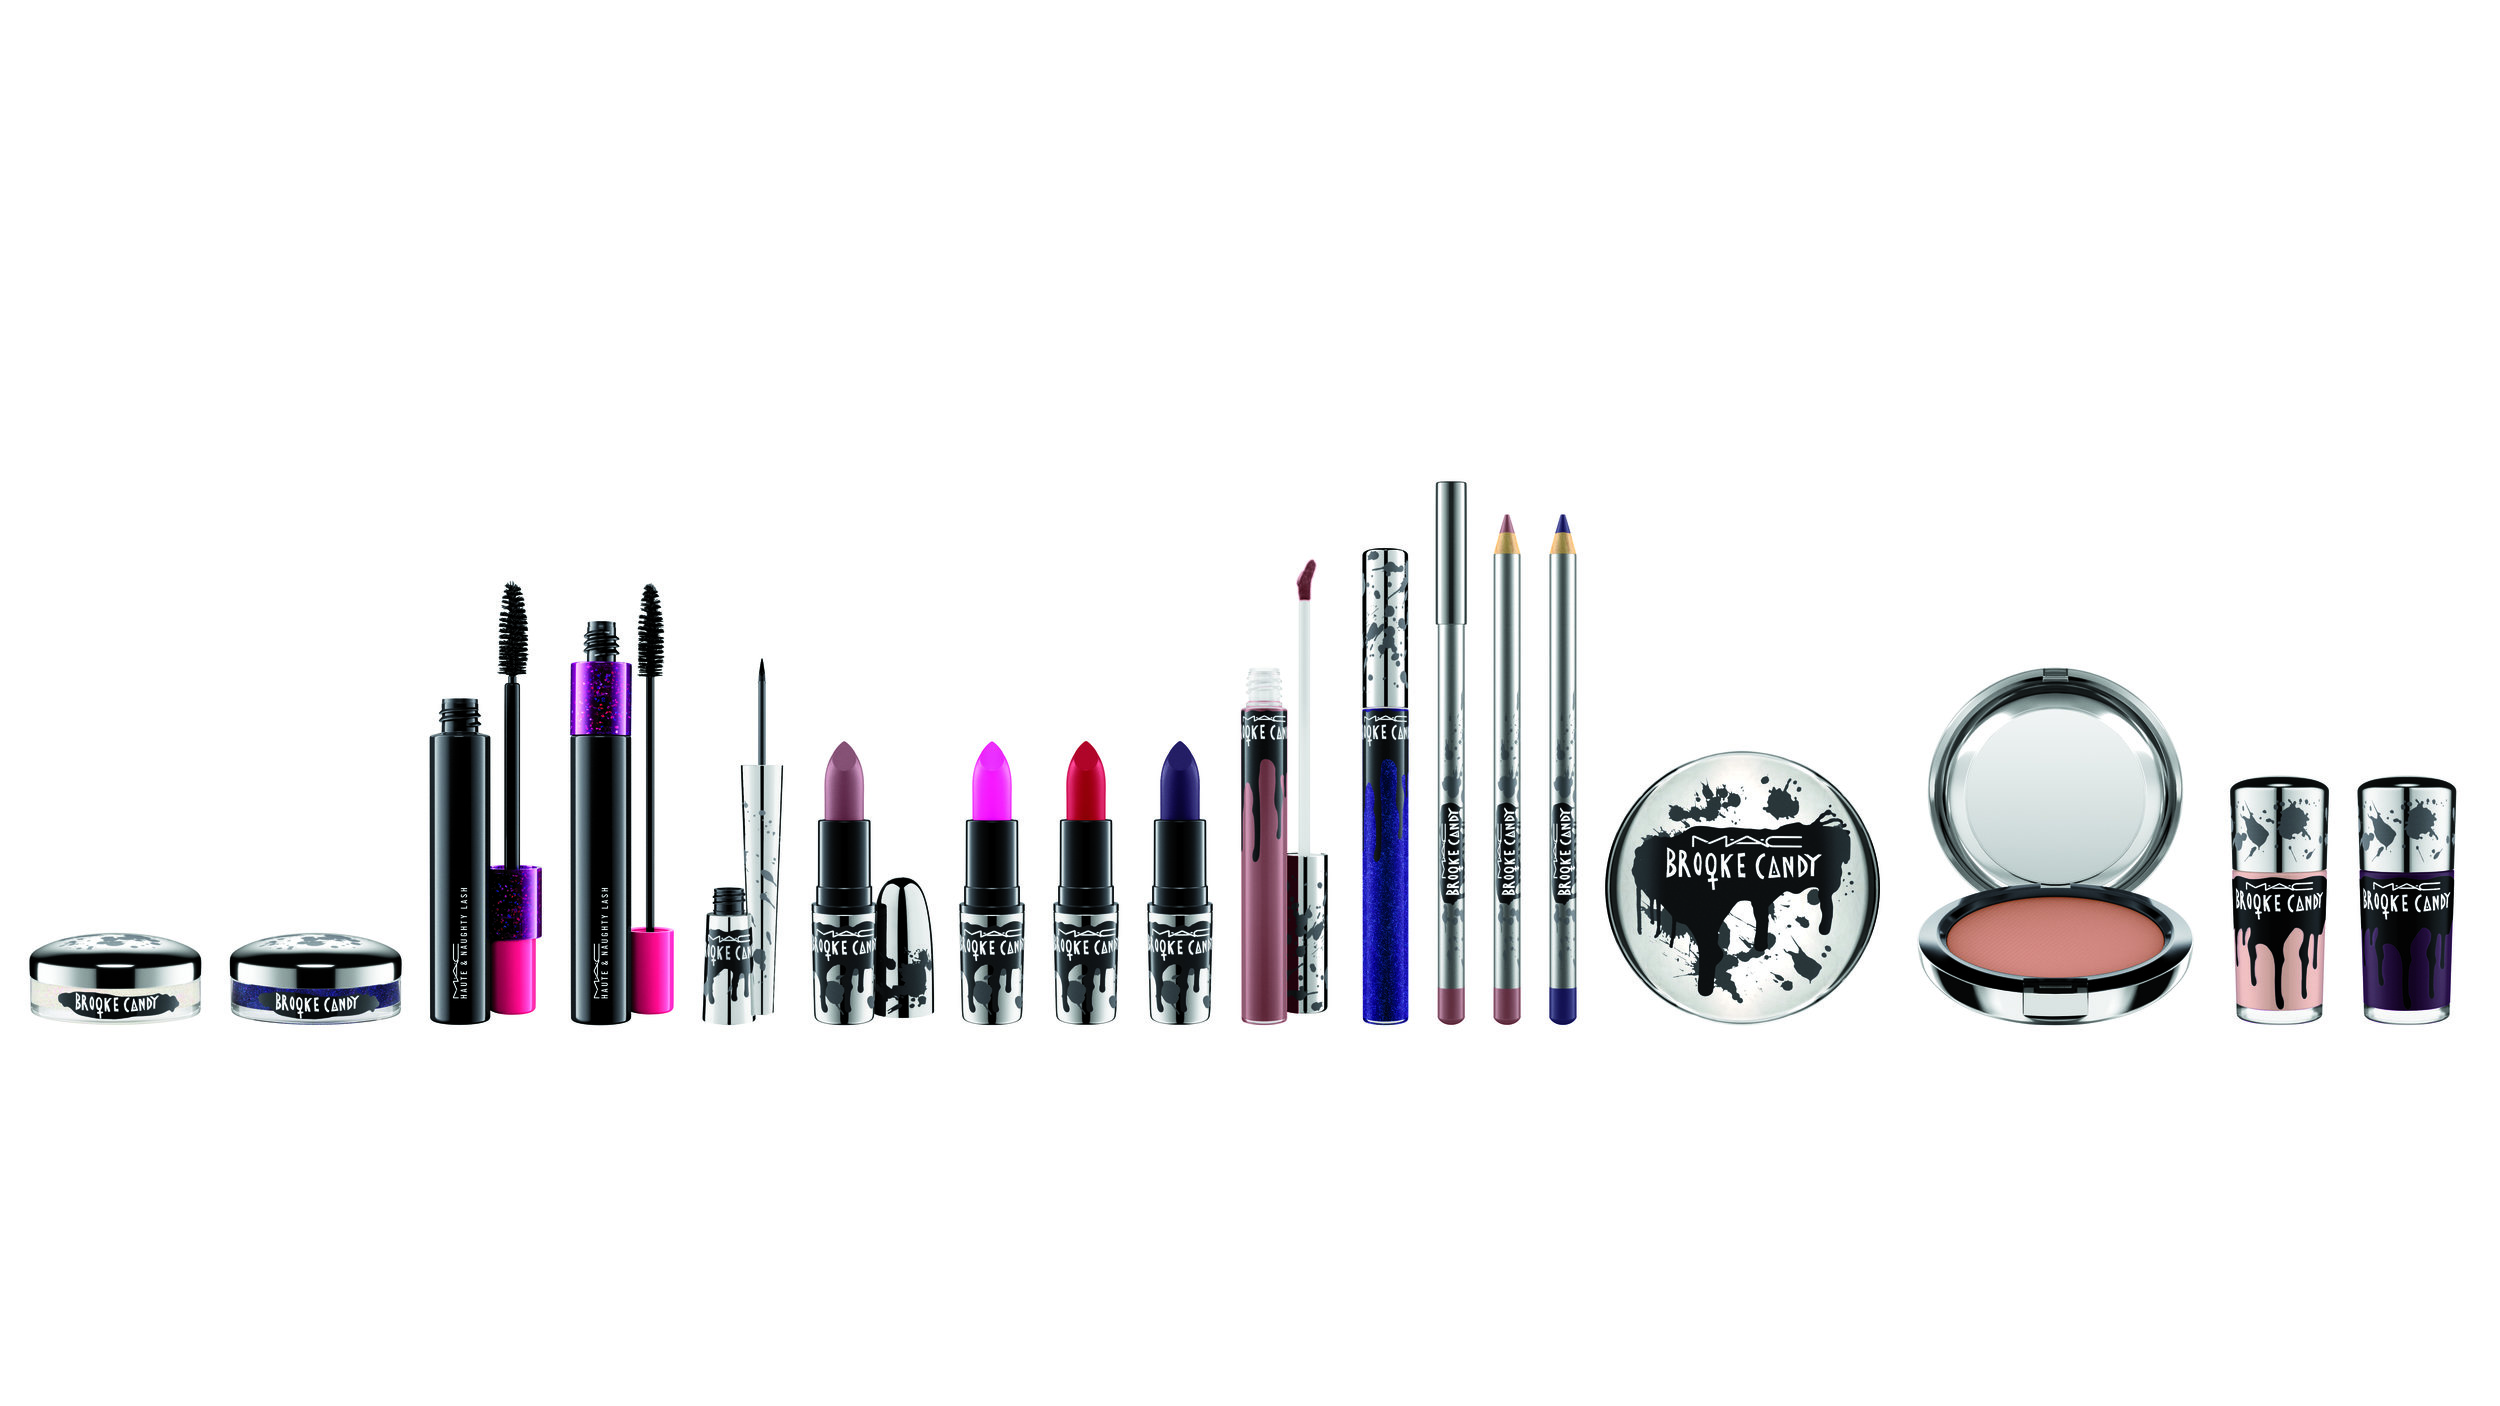 5974ec76272 MAC_Print_BrookeCandy_LINEUP_300 BROOKE CANDY_AMBIENT 72